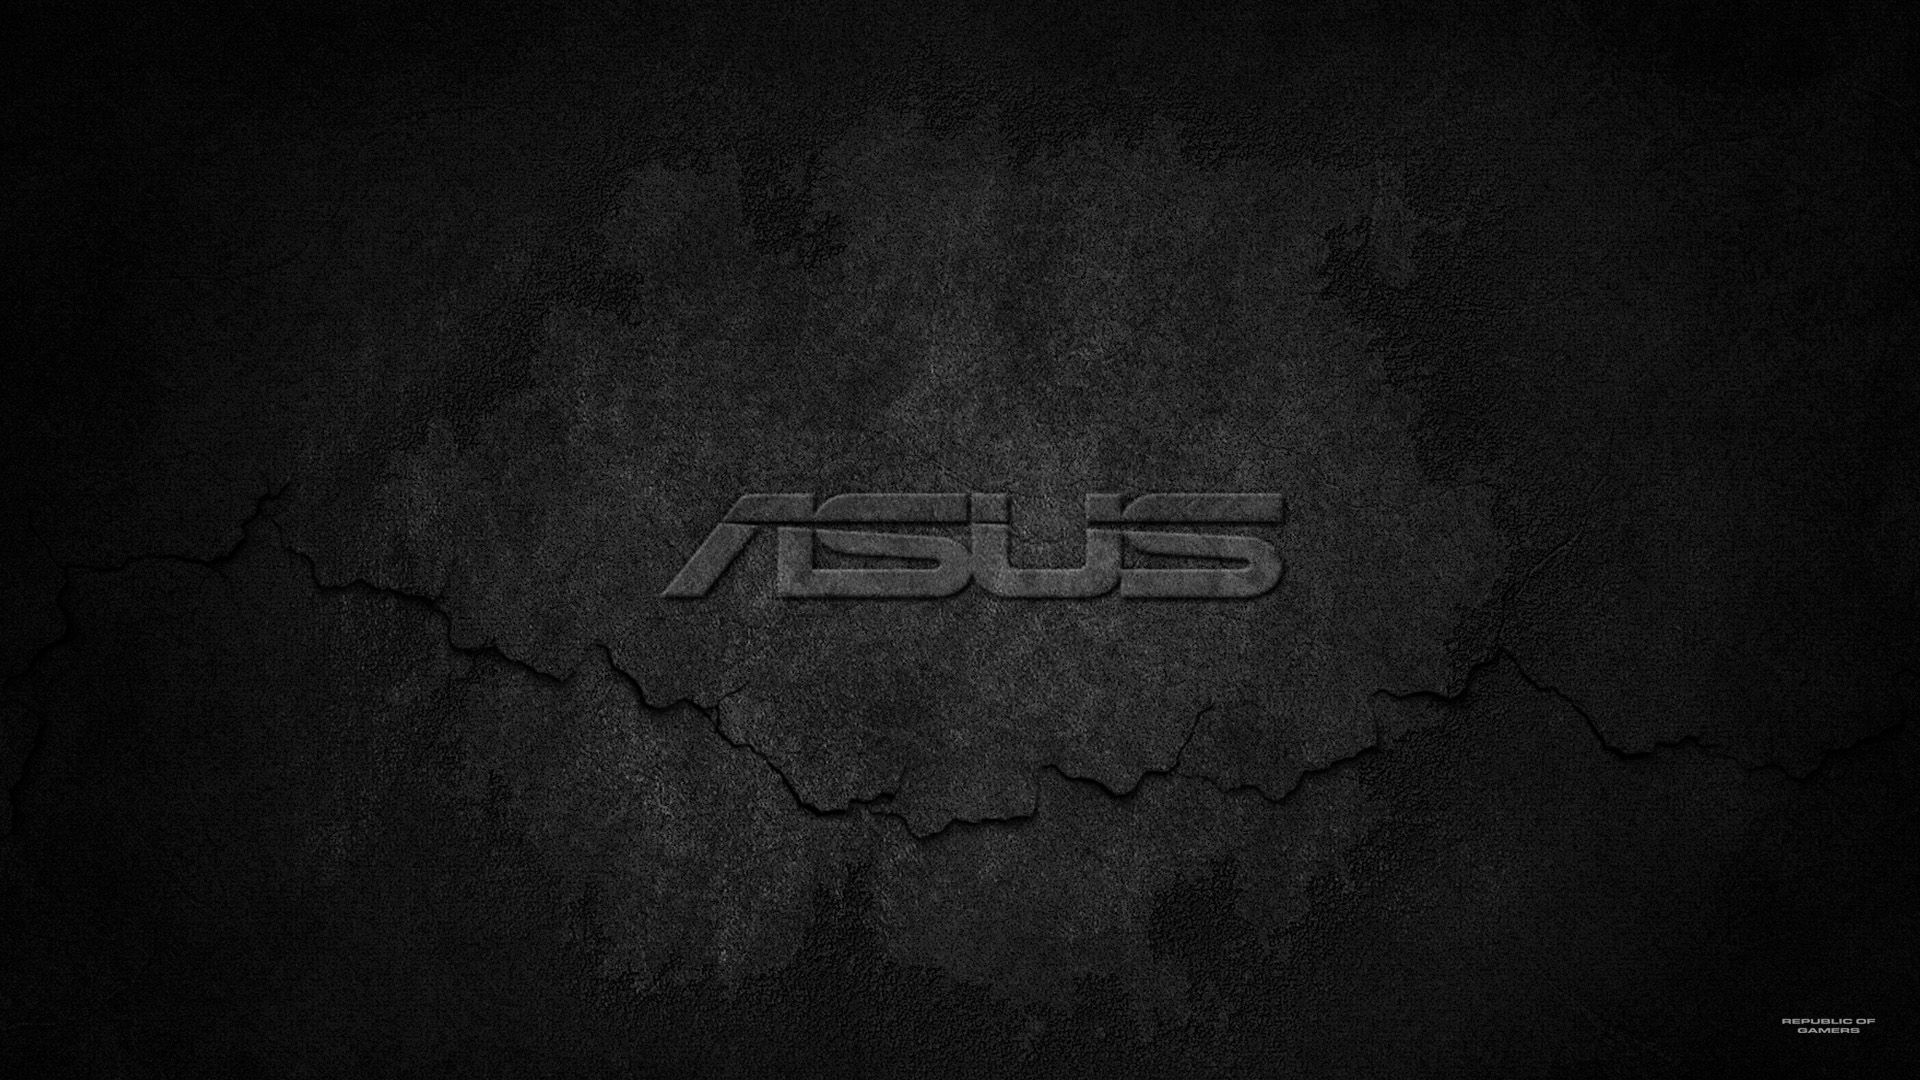 Asus Wallpapers - Top Free Asus Backgrounds - WallpaperAccess